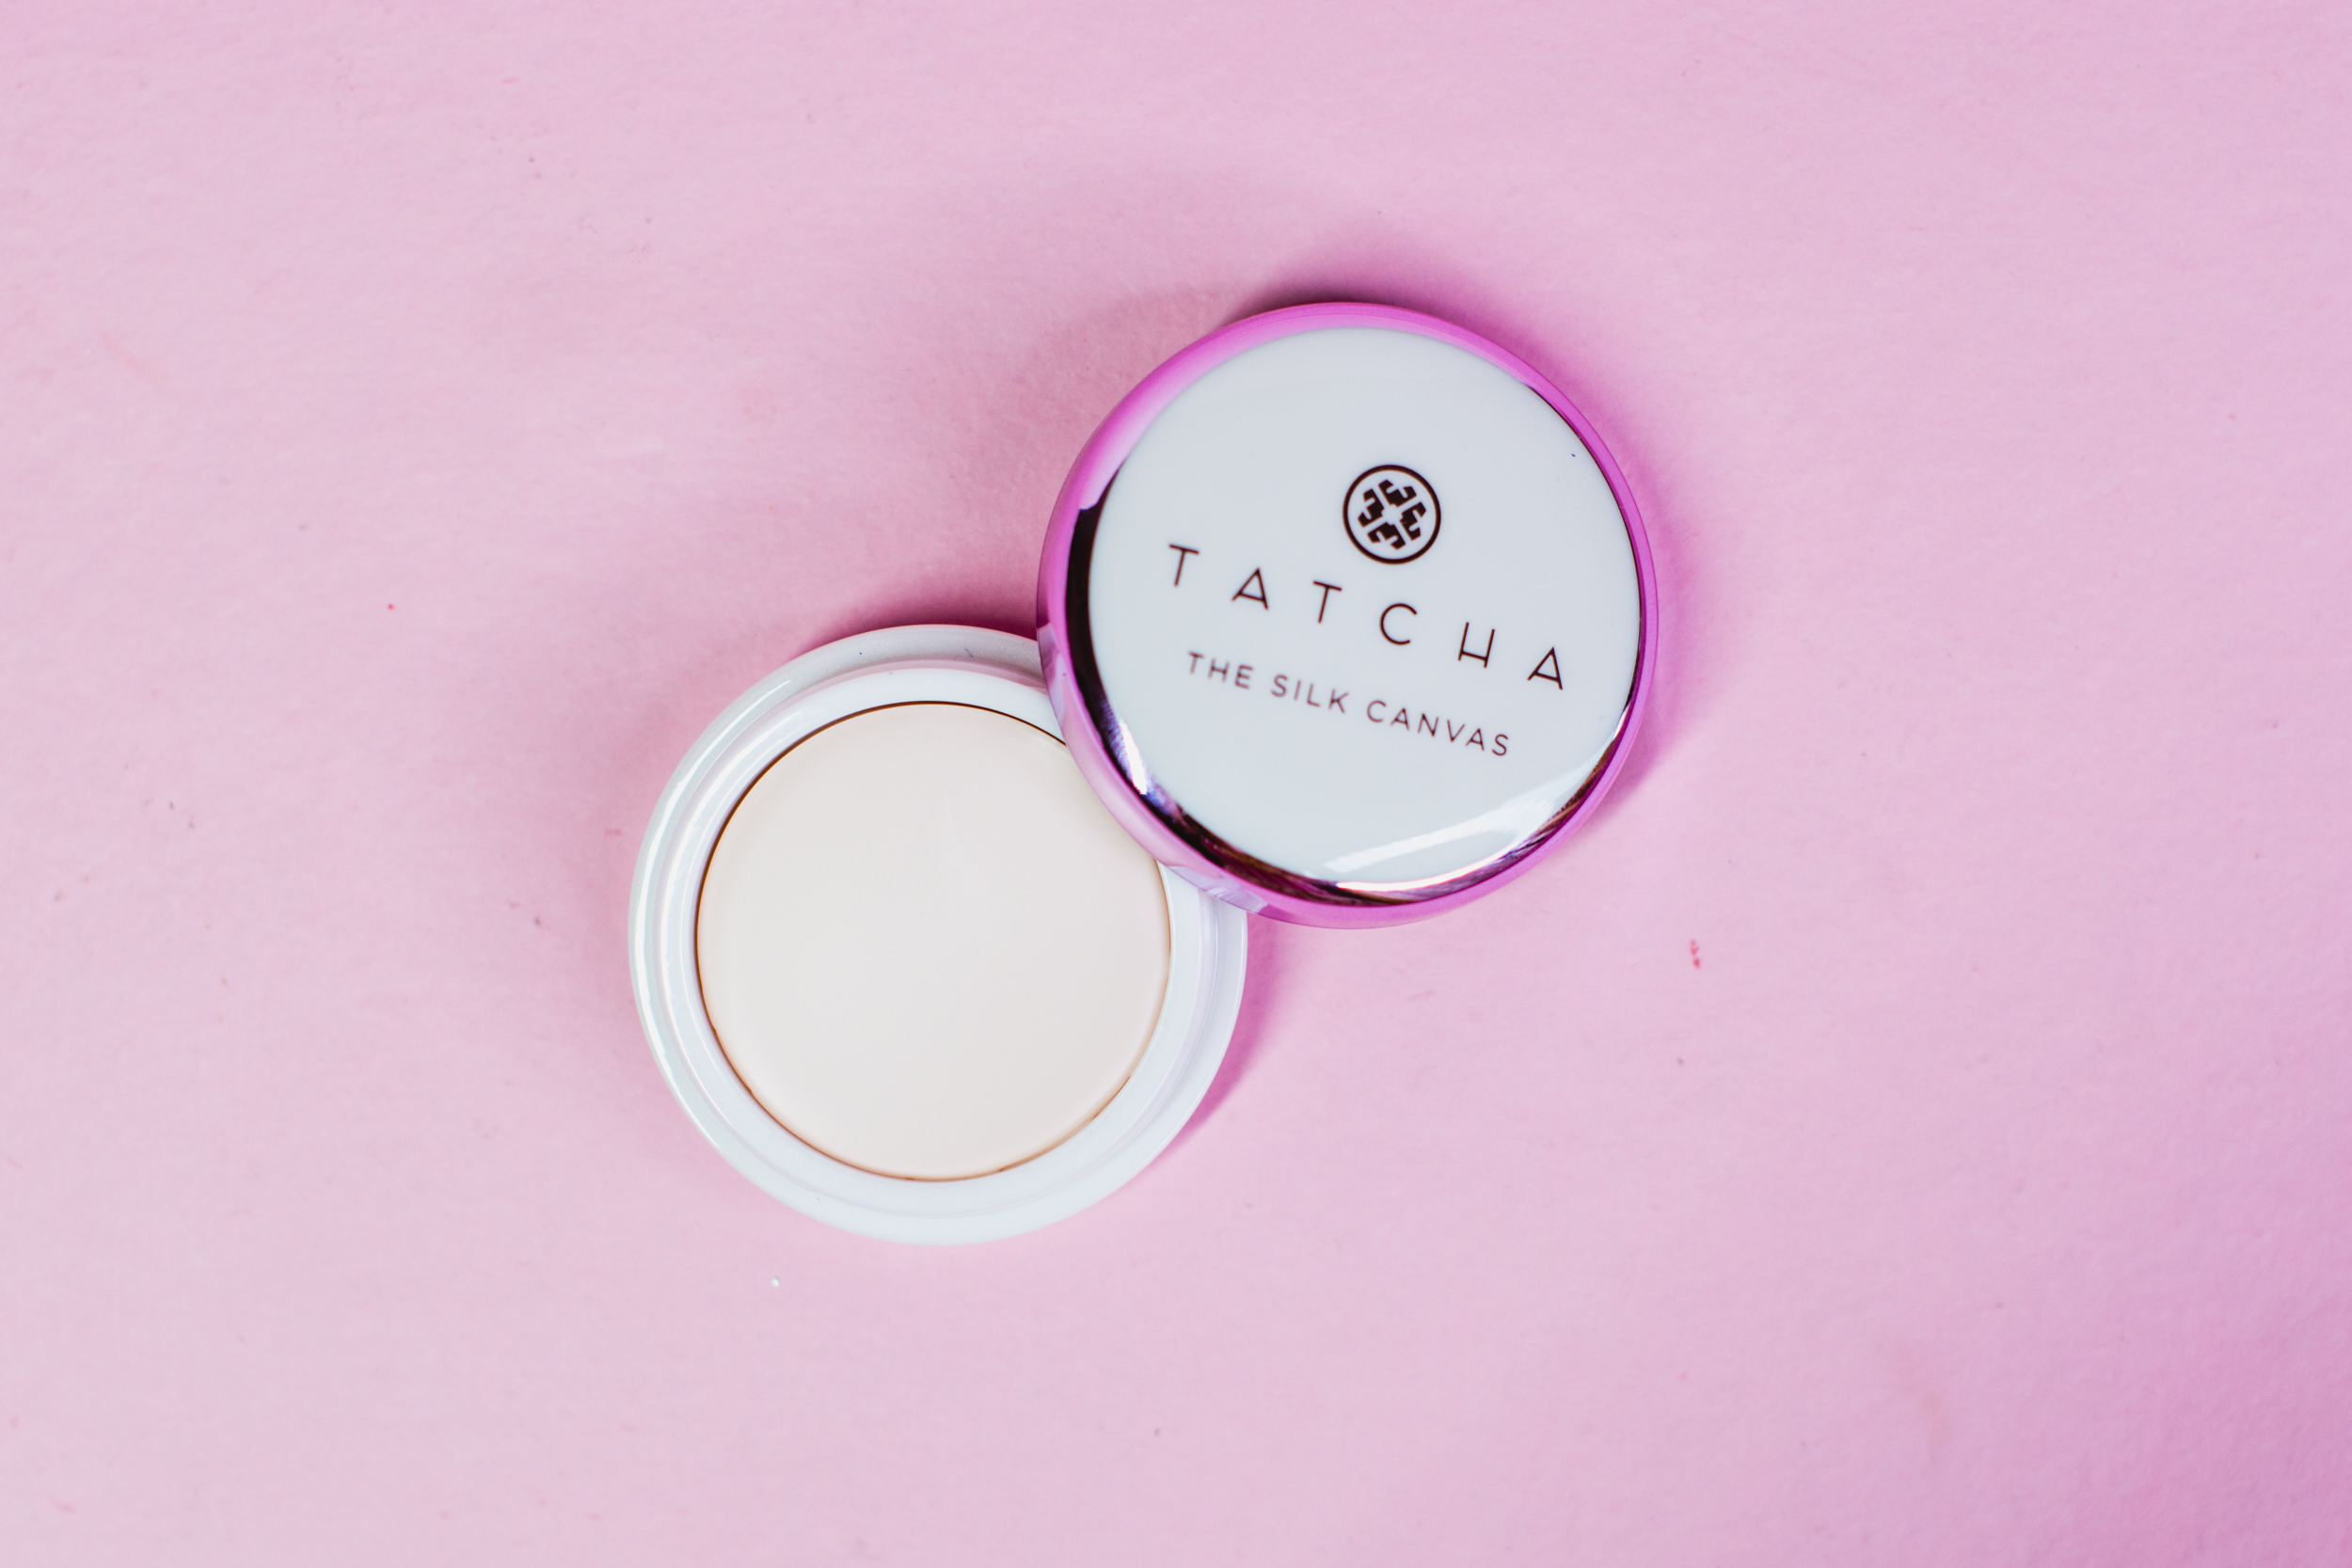 tatcha-silk-canvas_vs_elf-poreless-putty-primer_dupe_review-philippines_2019-6.JPG